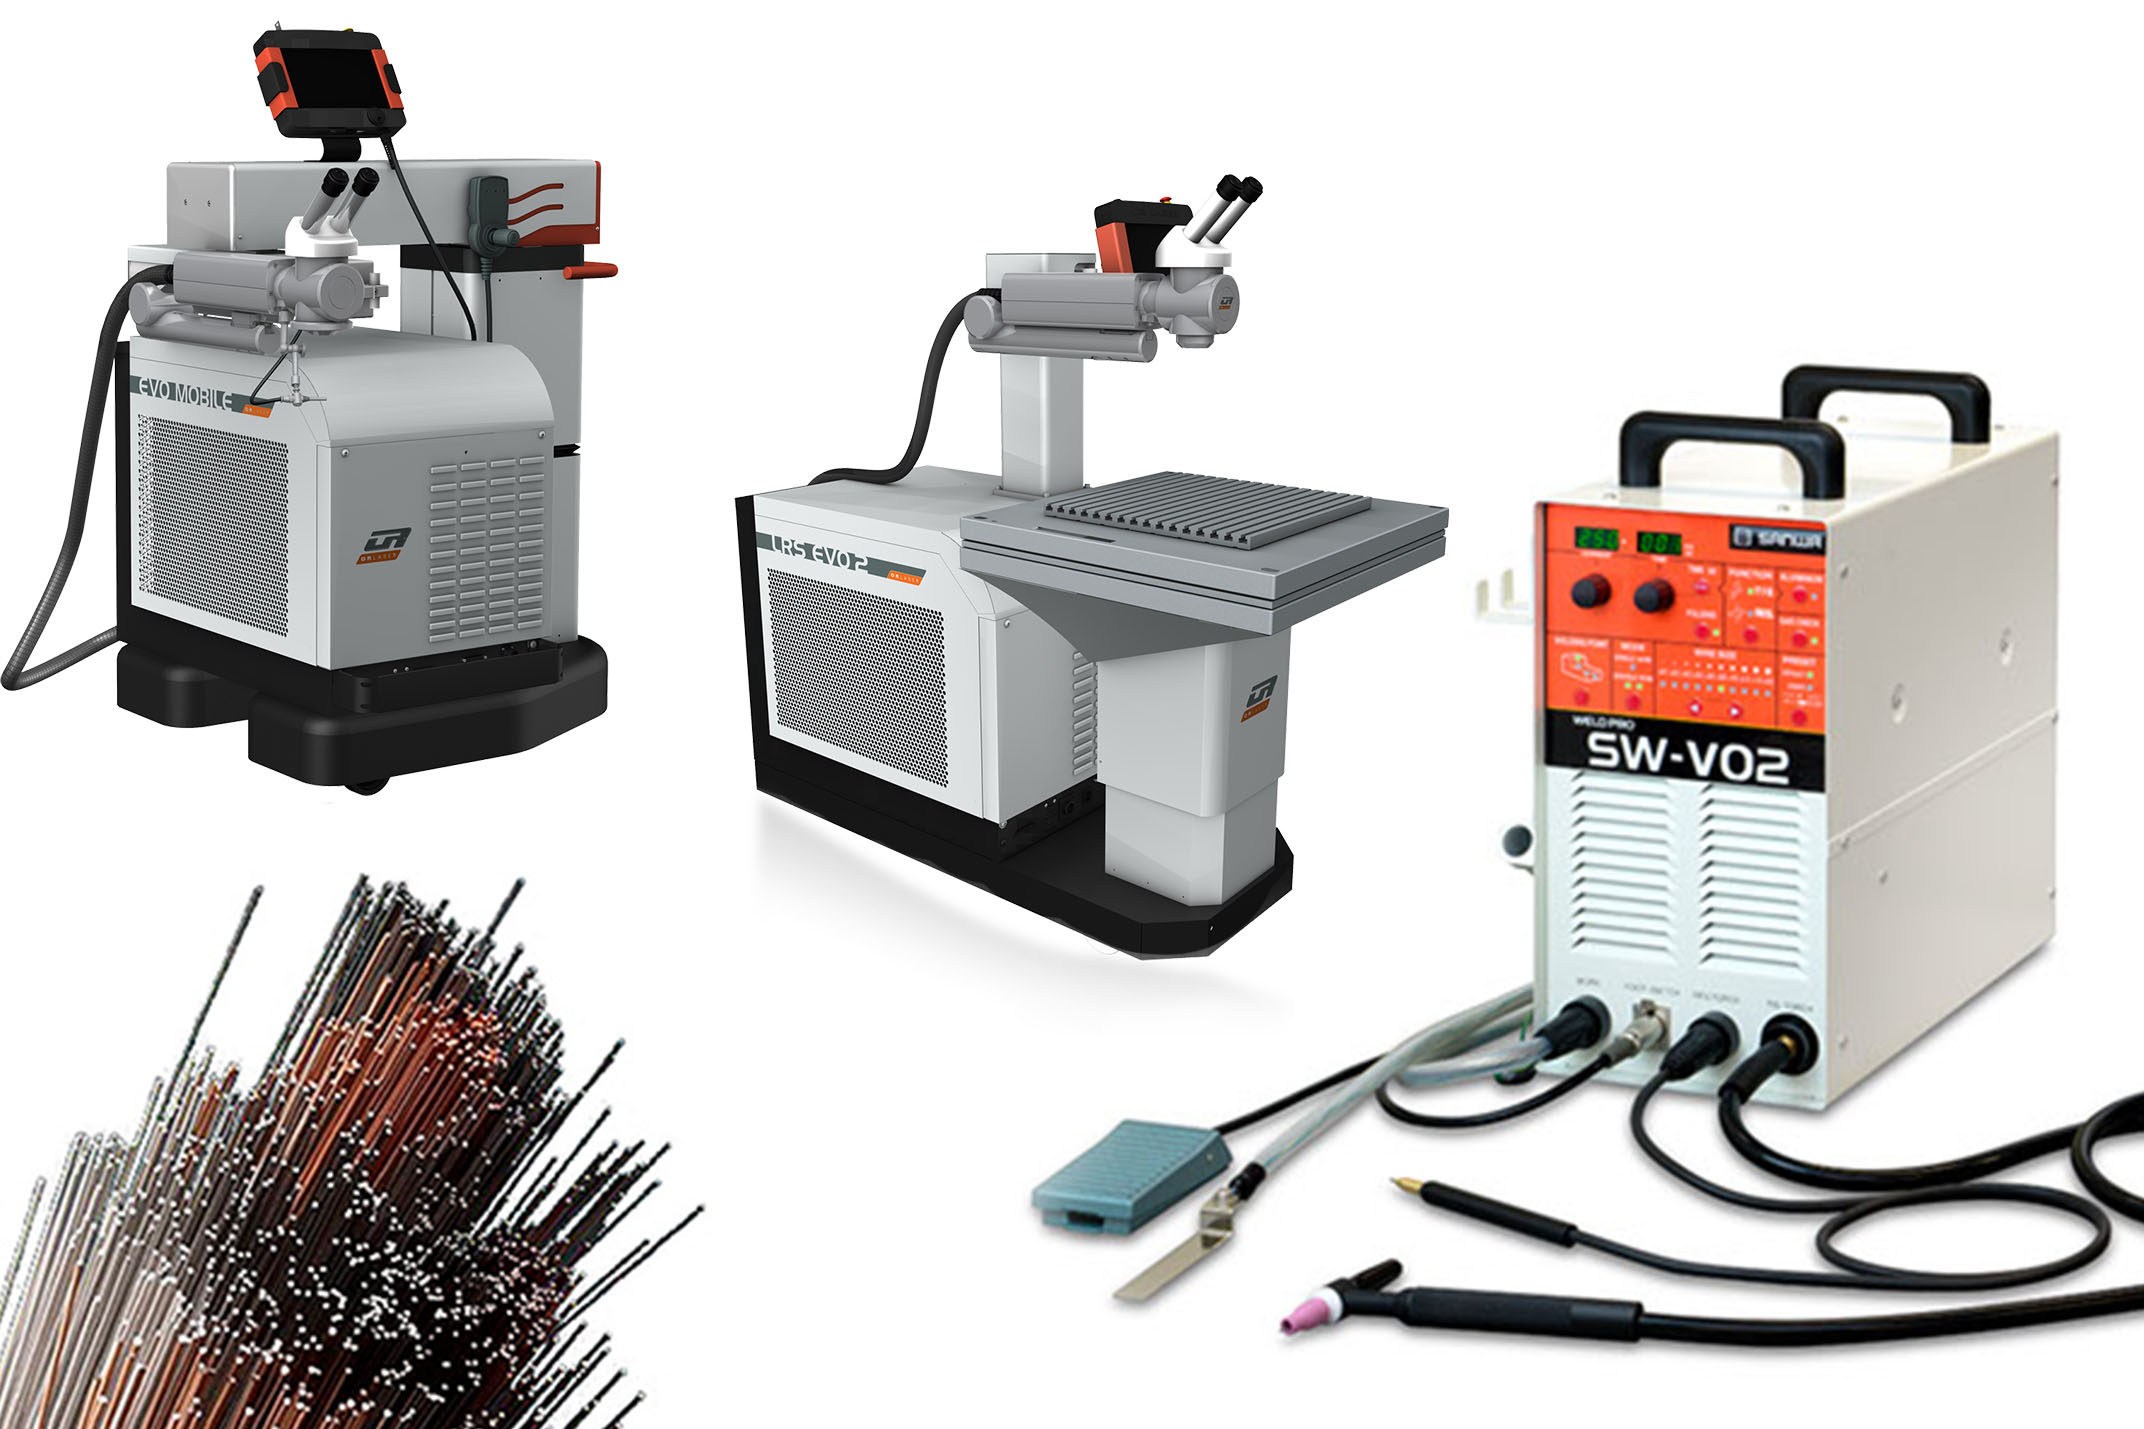 Laser welding & engraving machines